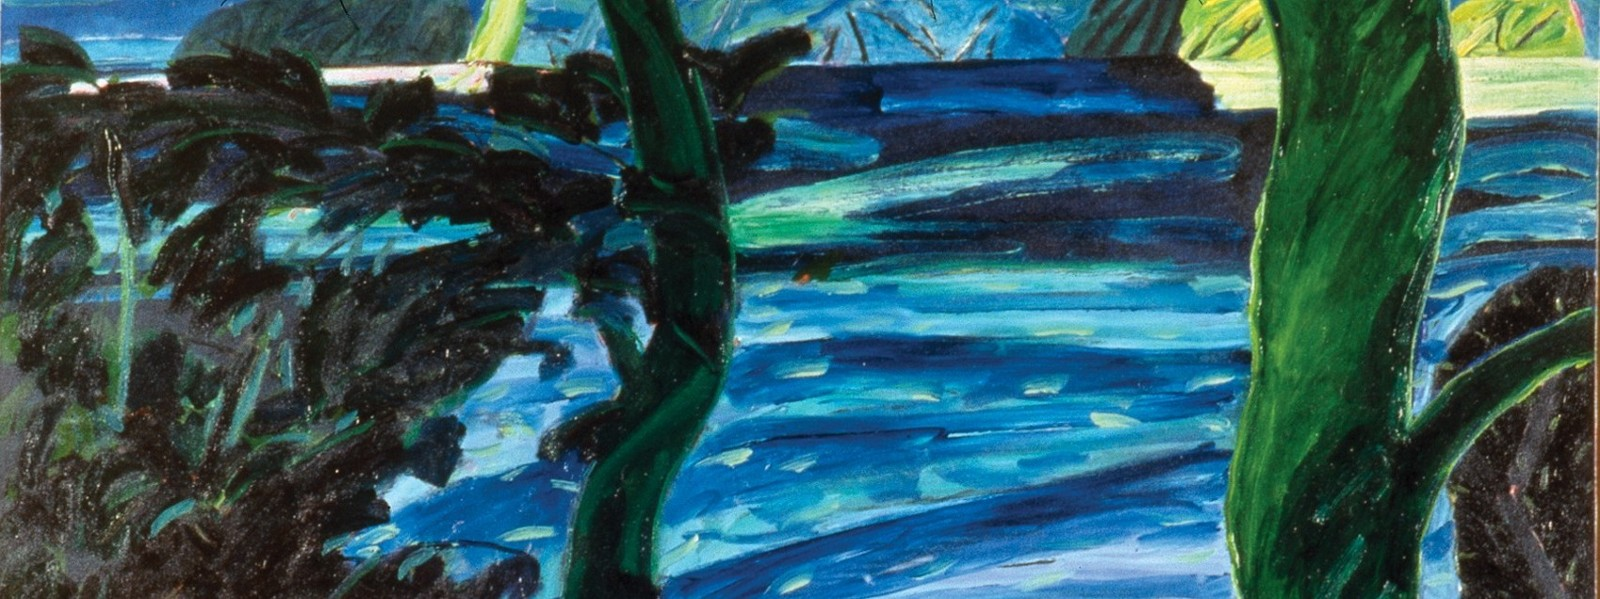 1988 The River Boundary  (Lough Hyne), Oil on canvas, Collection Crawford Art Gallery. Detail